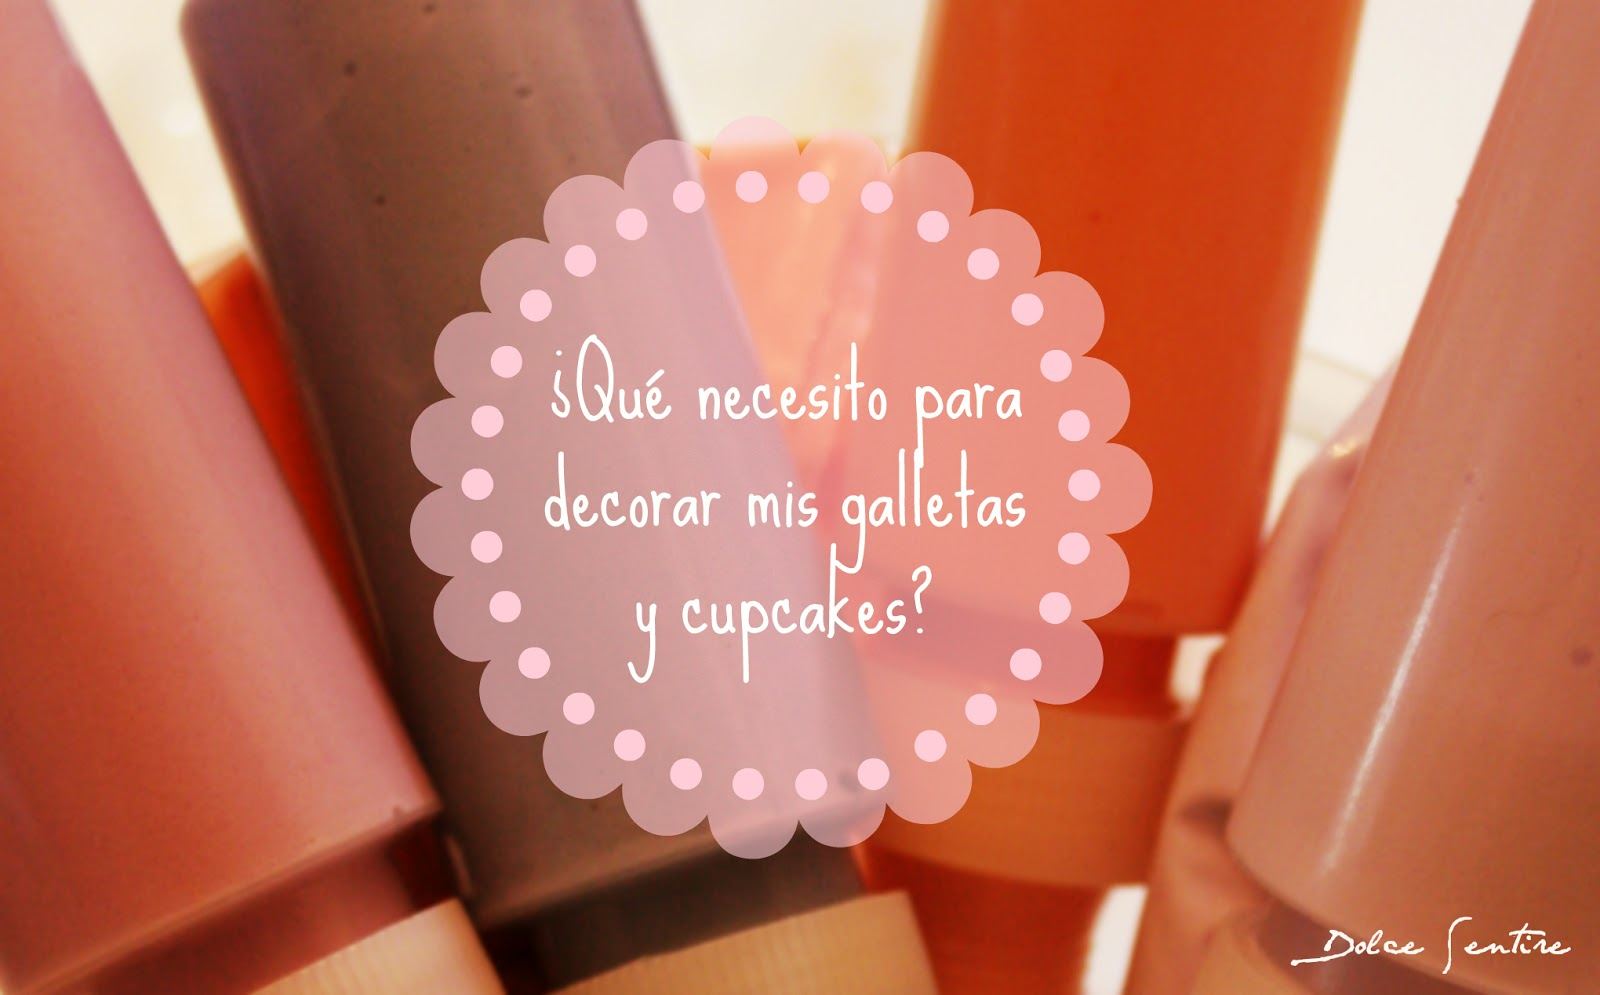 Herramientas básicas para decorar tus galletas y cupcakes (cookies and cupcakes decorating supplies)